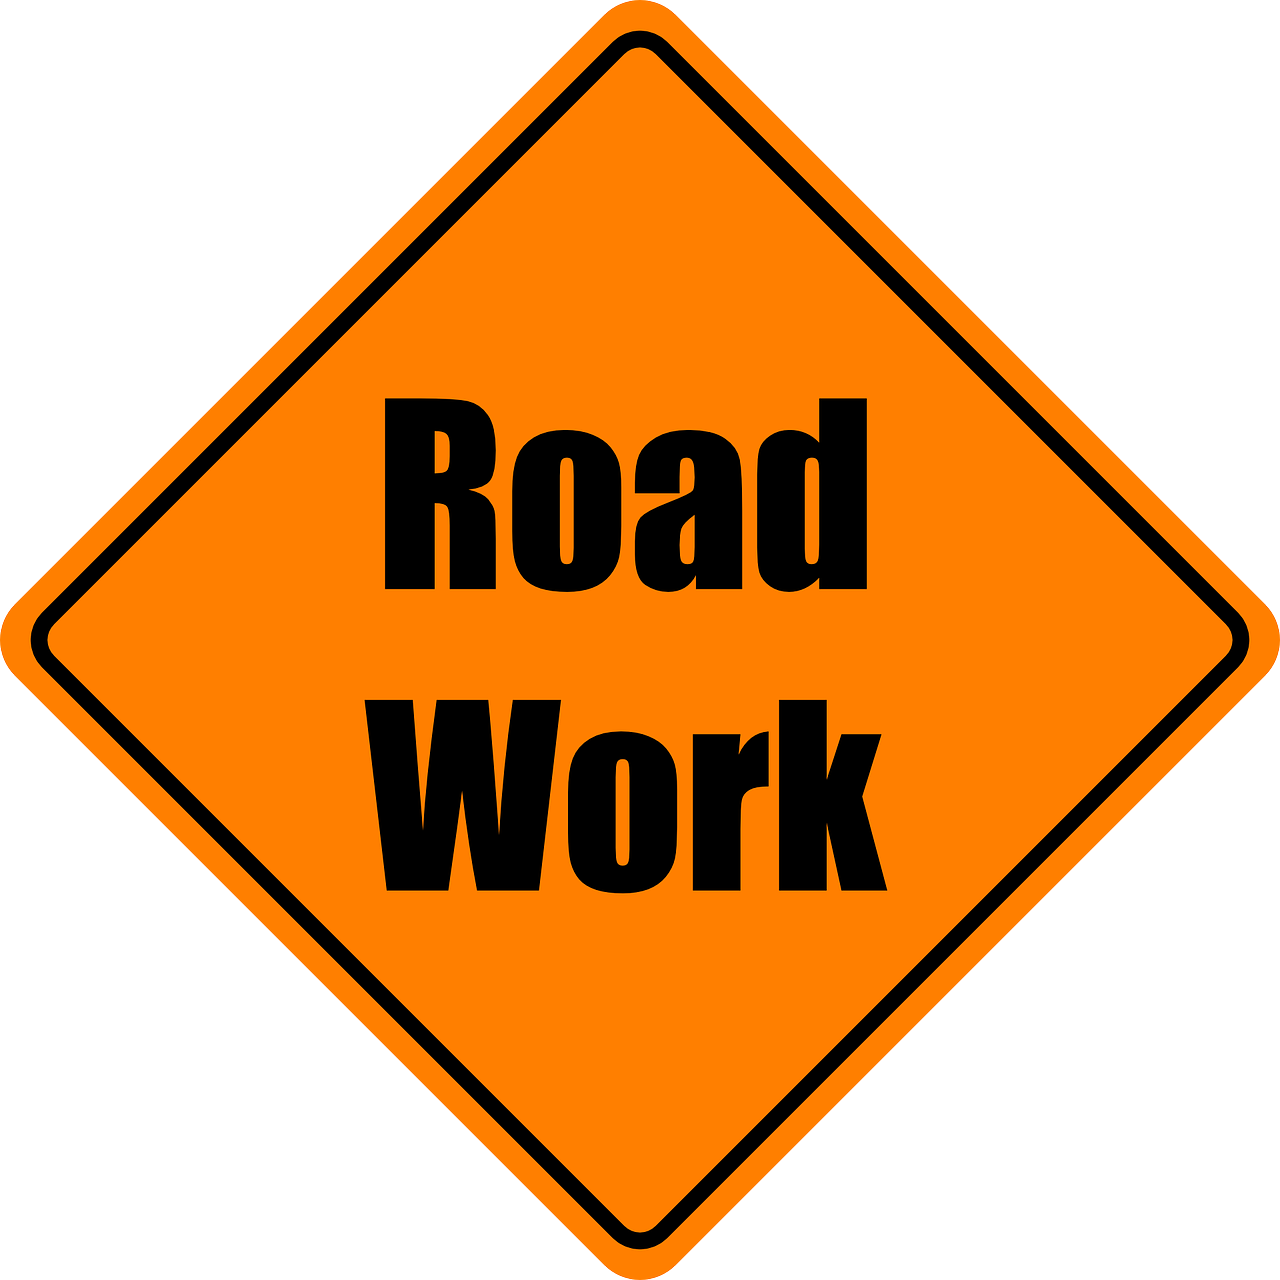 Road Work Sign (JPG)